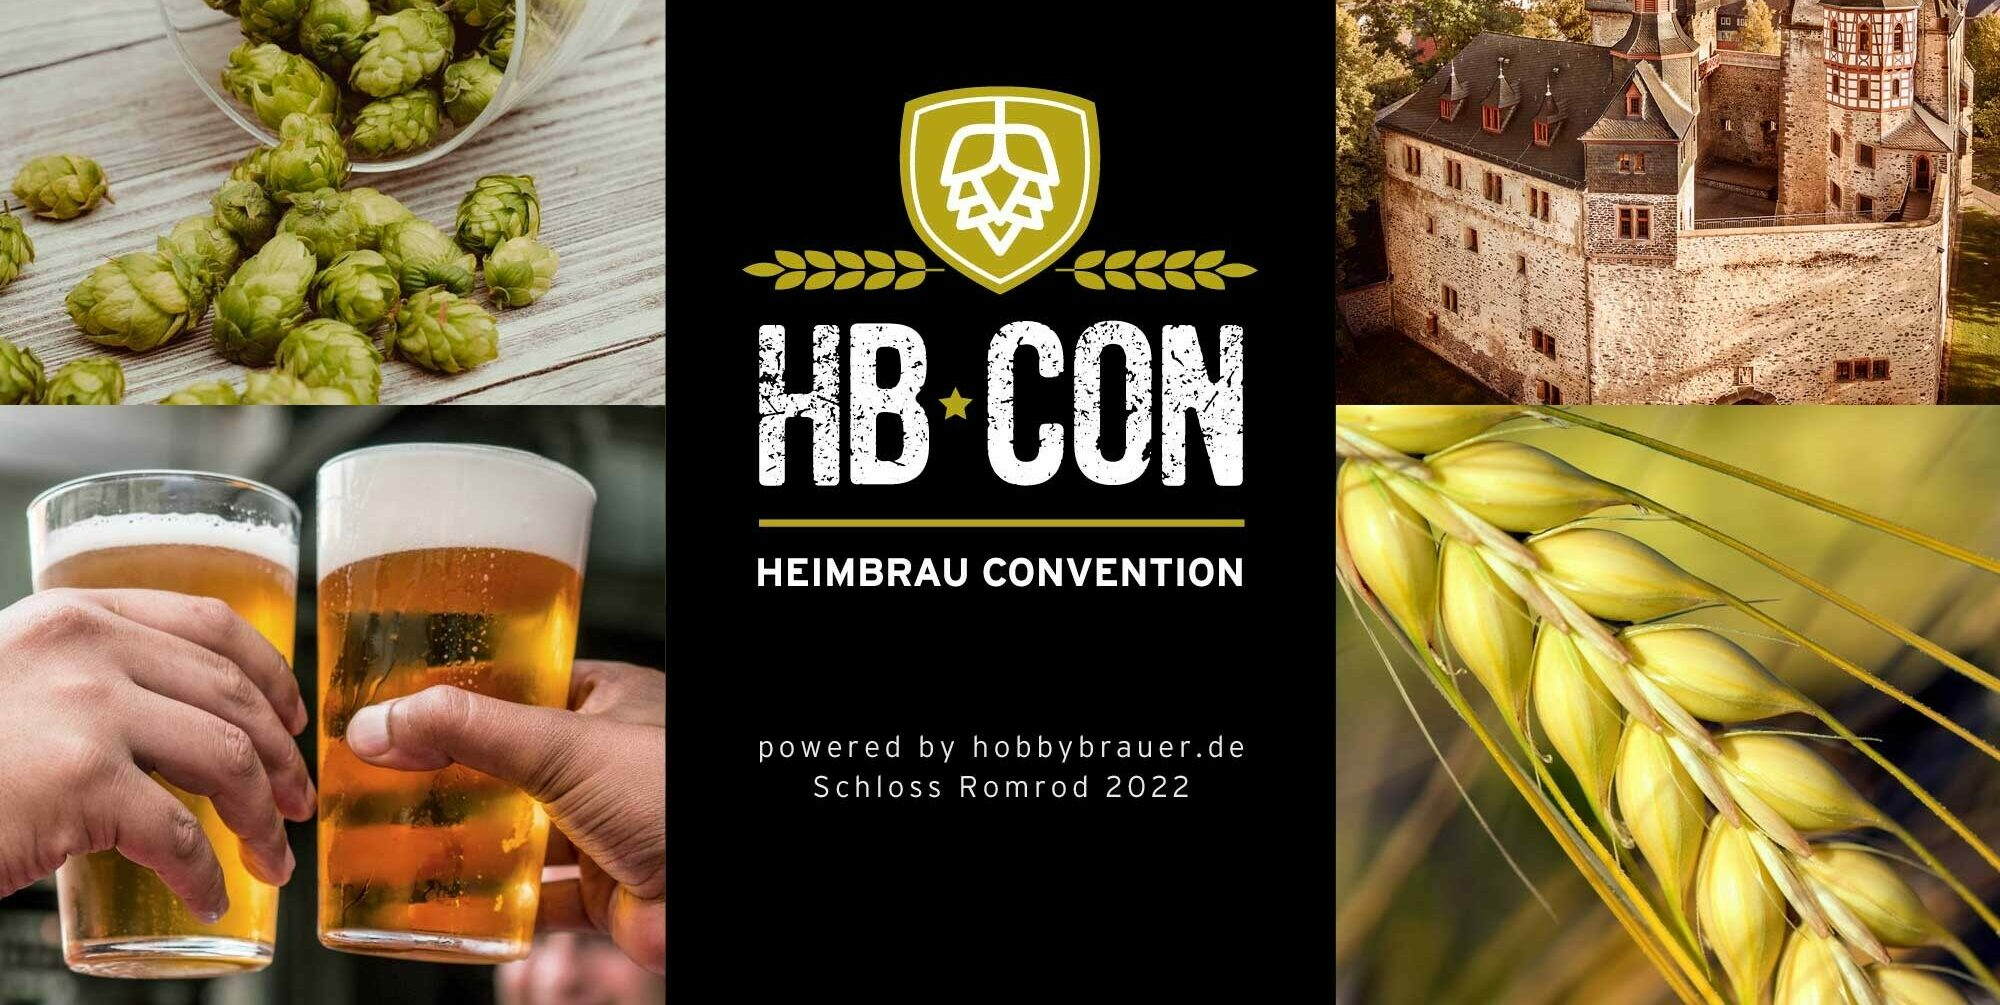 Heimbrau Convention